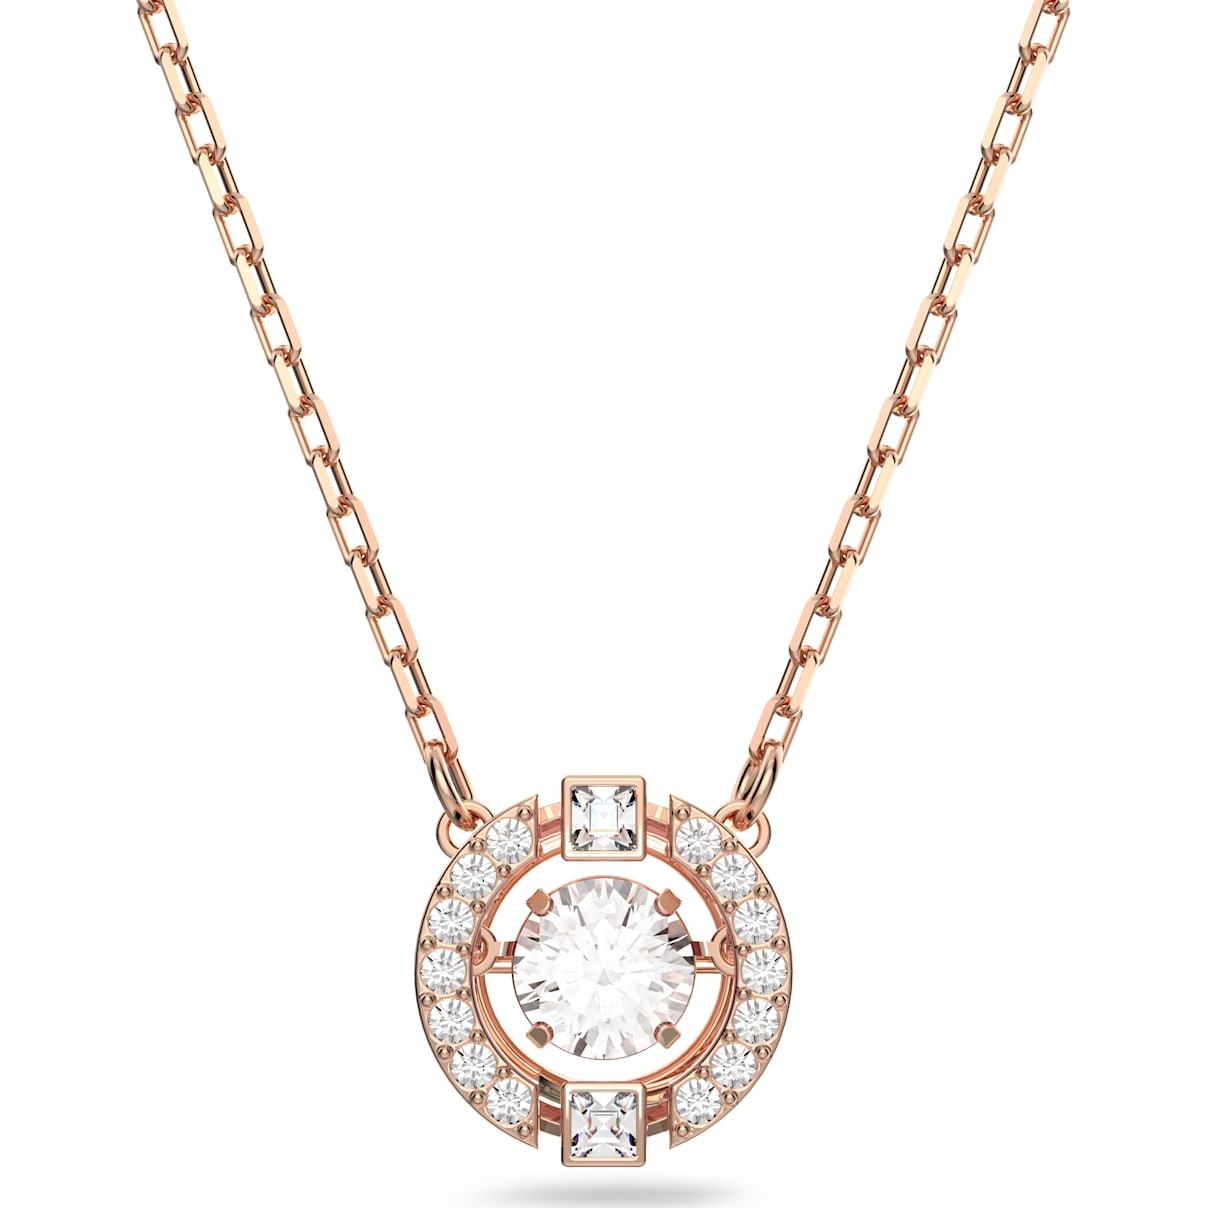 Swarovski Swarovski Sparkling Dance Round Necklace, White, Rose-gold tone plated